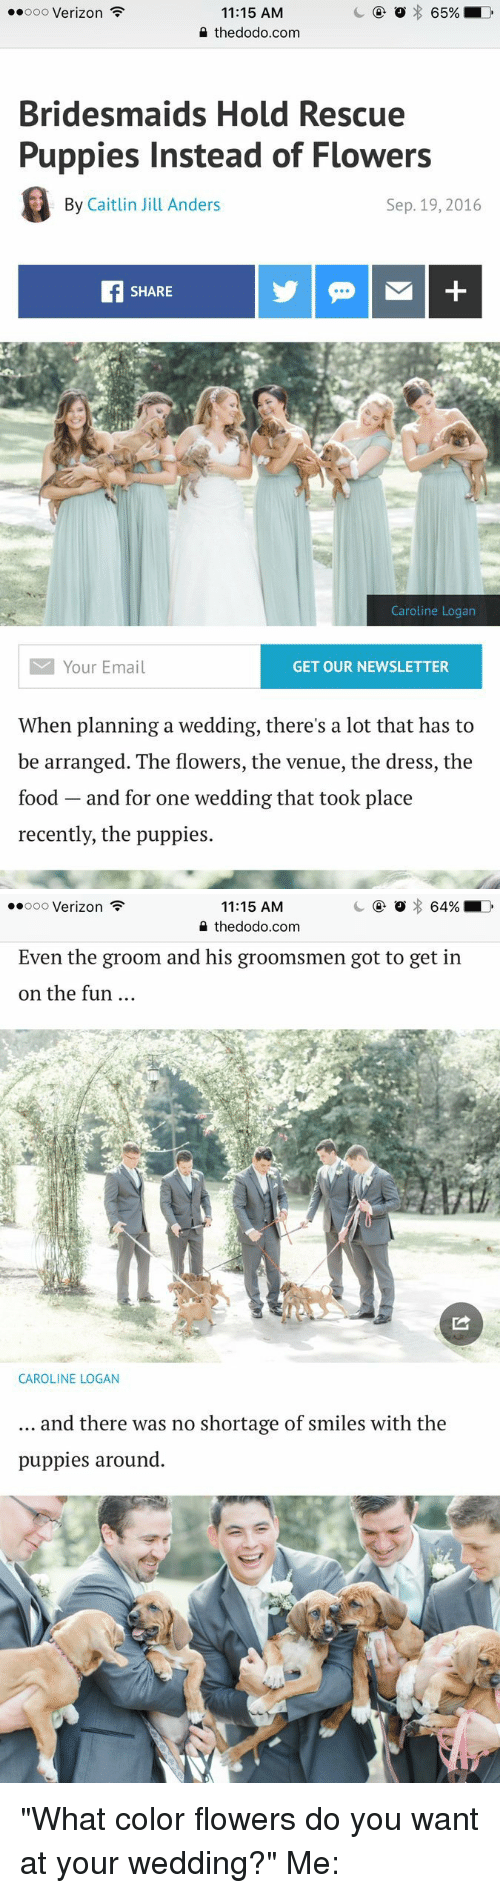 """Groomsmen: 65%  ooooo Verizon  11:15 AM  the dodo.com  Bridesmaids Hold Rescue  Puppies Instead of Flowers  By Caitlin Jill Anders  Sep. 19, 2016  SHARE  Caroline Logan  M Your Email  GET OUR NEWSLETTER  When planning a wedding, there's a lot that has to  be arranged. The flowers, the venue, the dress, the  food and for one wedding that took place  recently, the puppies.   64% LD  ooooo Verizon  11:15 AM  the dodo.com  Even the groom and his groomsmen got to get in  on the fun  CAROLINE LOGAN  and there was no shortage of smiles with the  puppies around """"What color flowers do you want at your wedding?"""" Me:"""